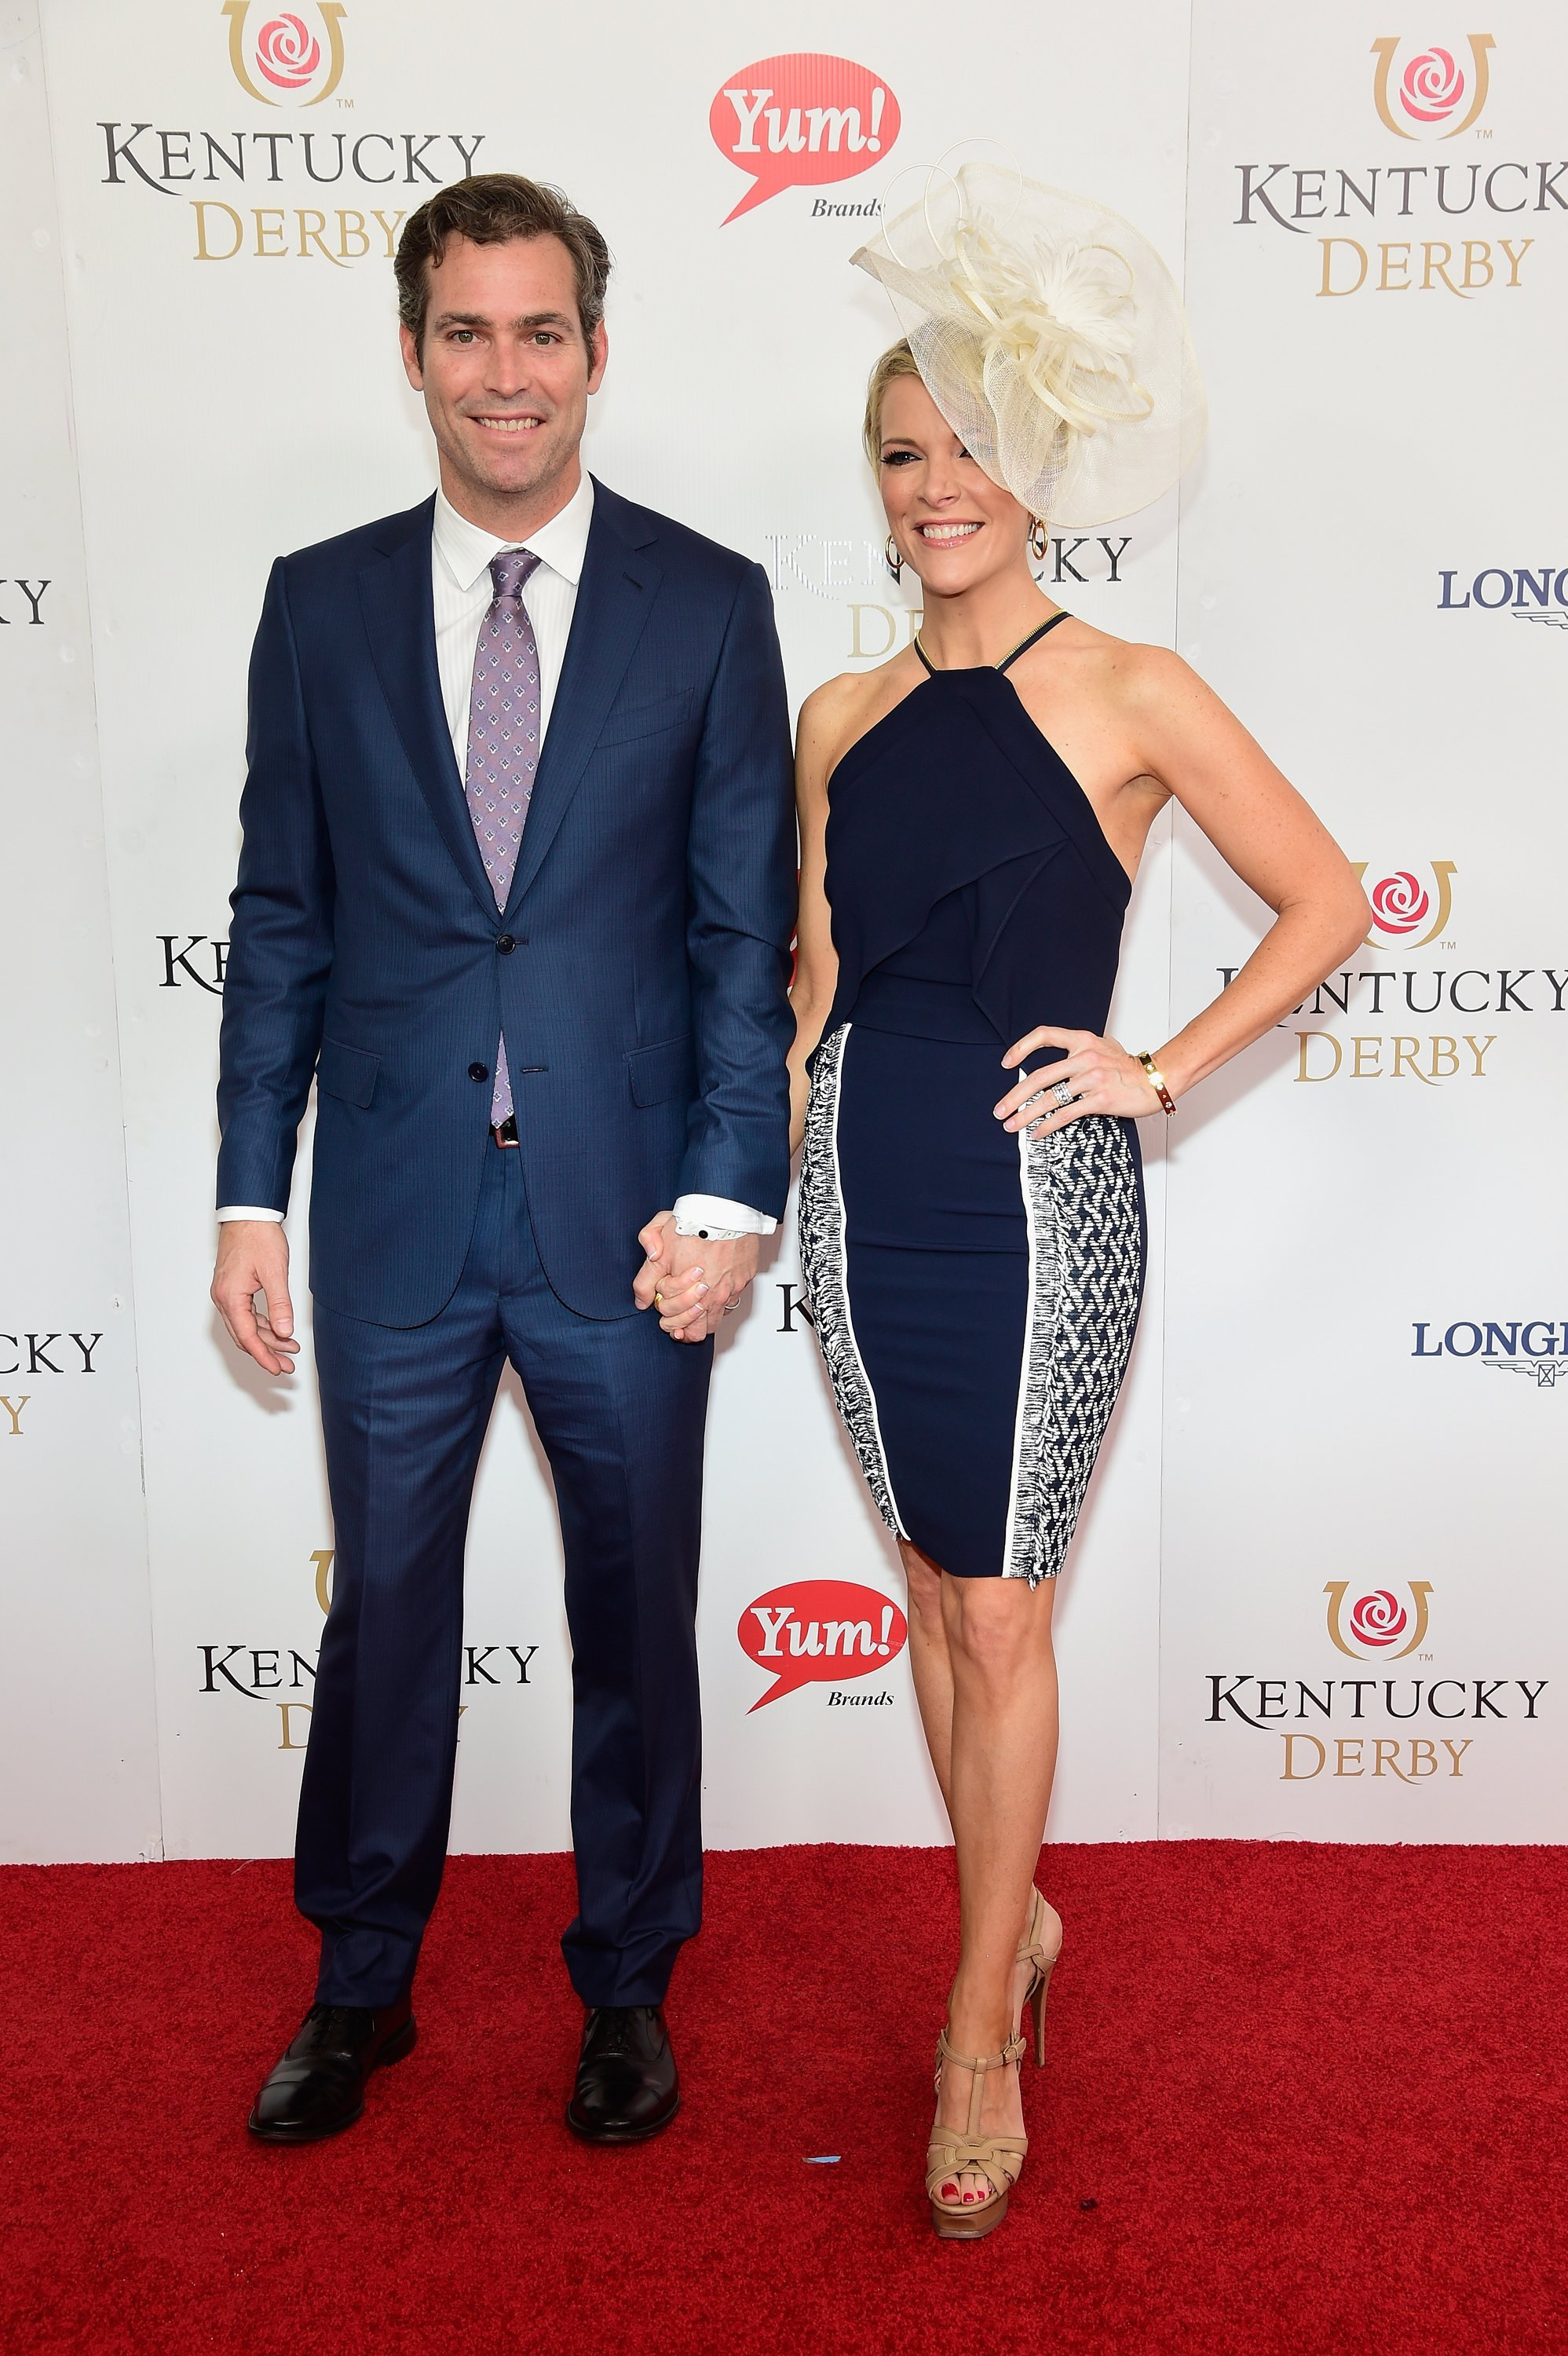 Douglas Brunt (L) and Fox News reporter Megyn Kelly attend the 142nd Kentucky Derby at Churchill Downs on May 07, 2016, in Louisville, Kentucky. | Source: Getty Images.